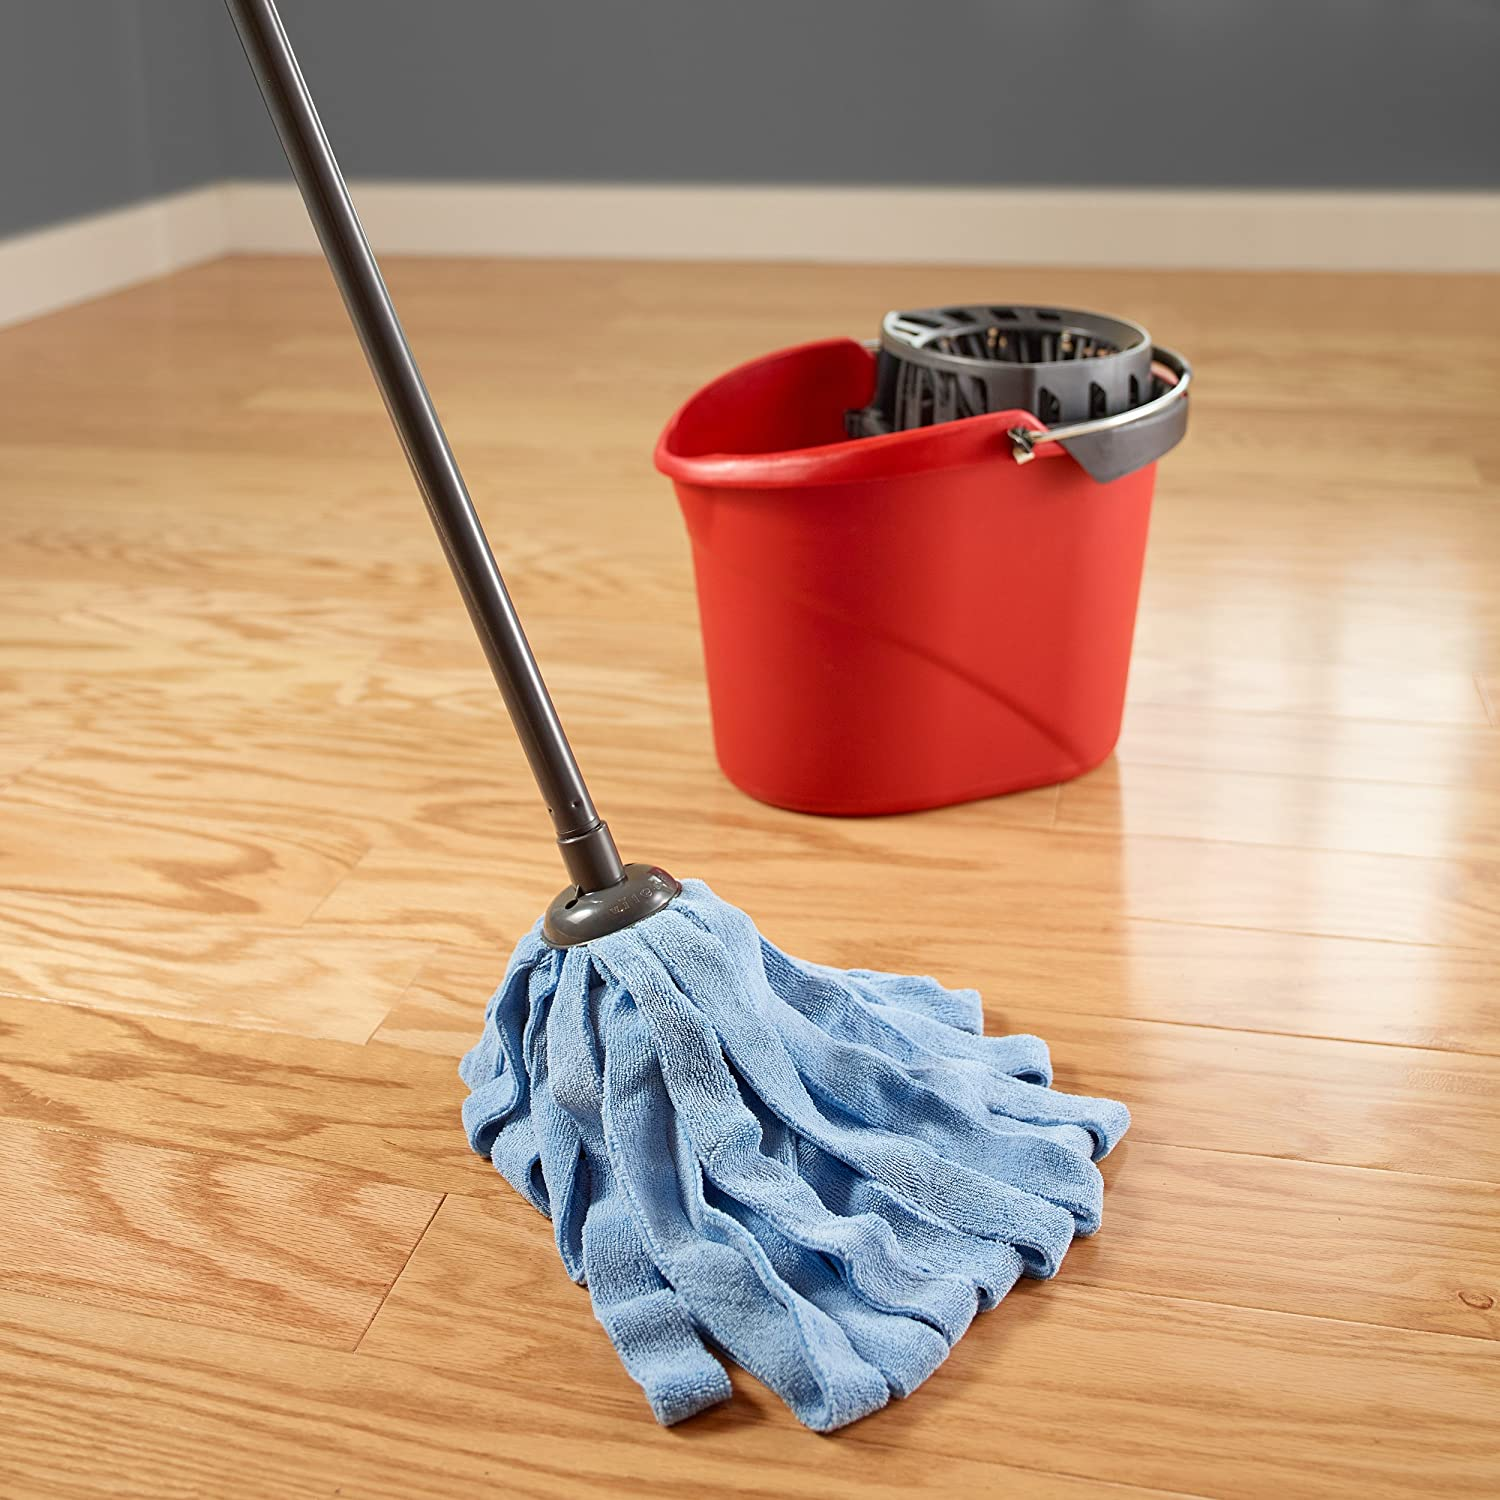 Best Mop For Tile Floors 2019 Buyer S Guide